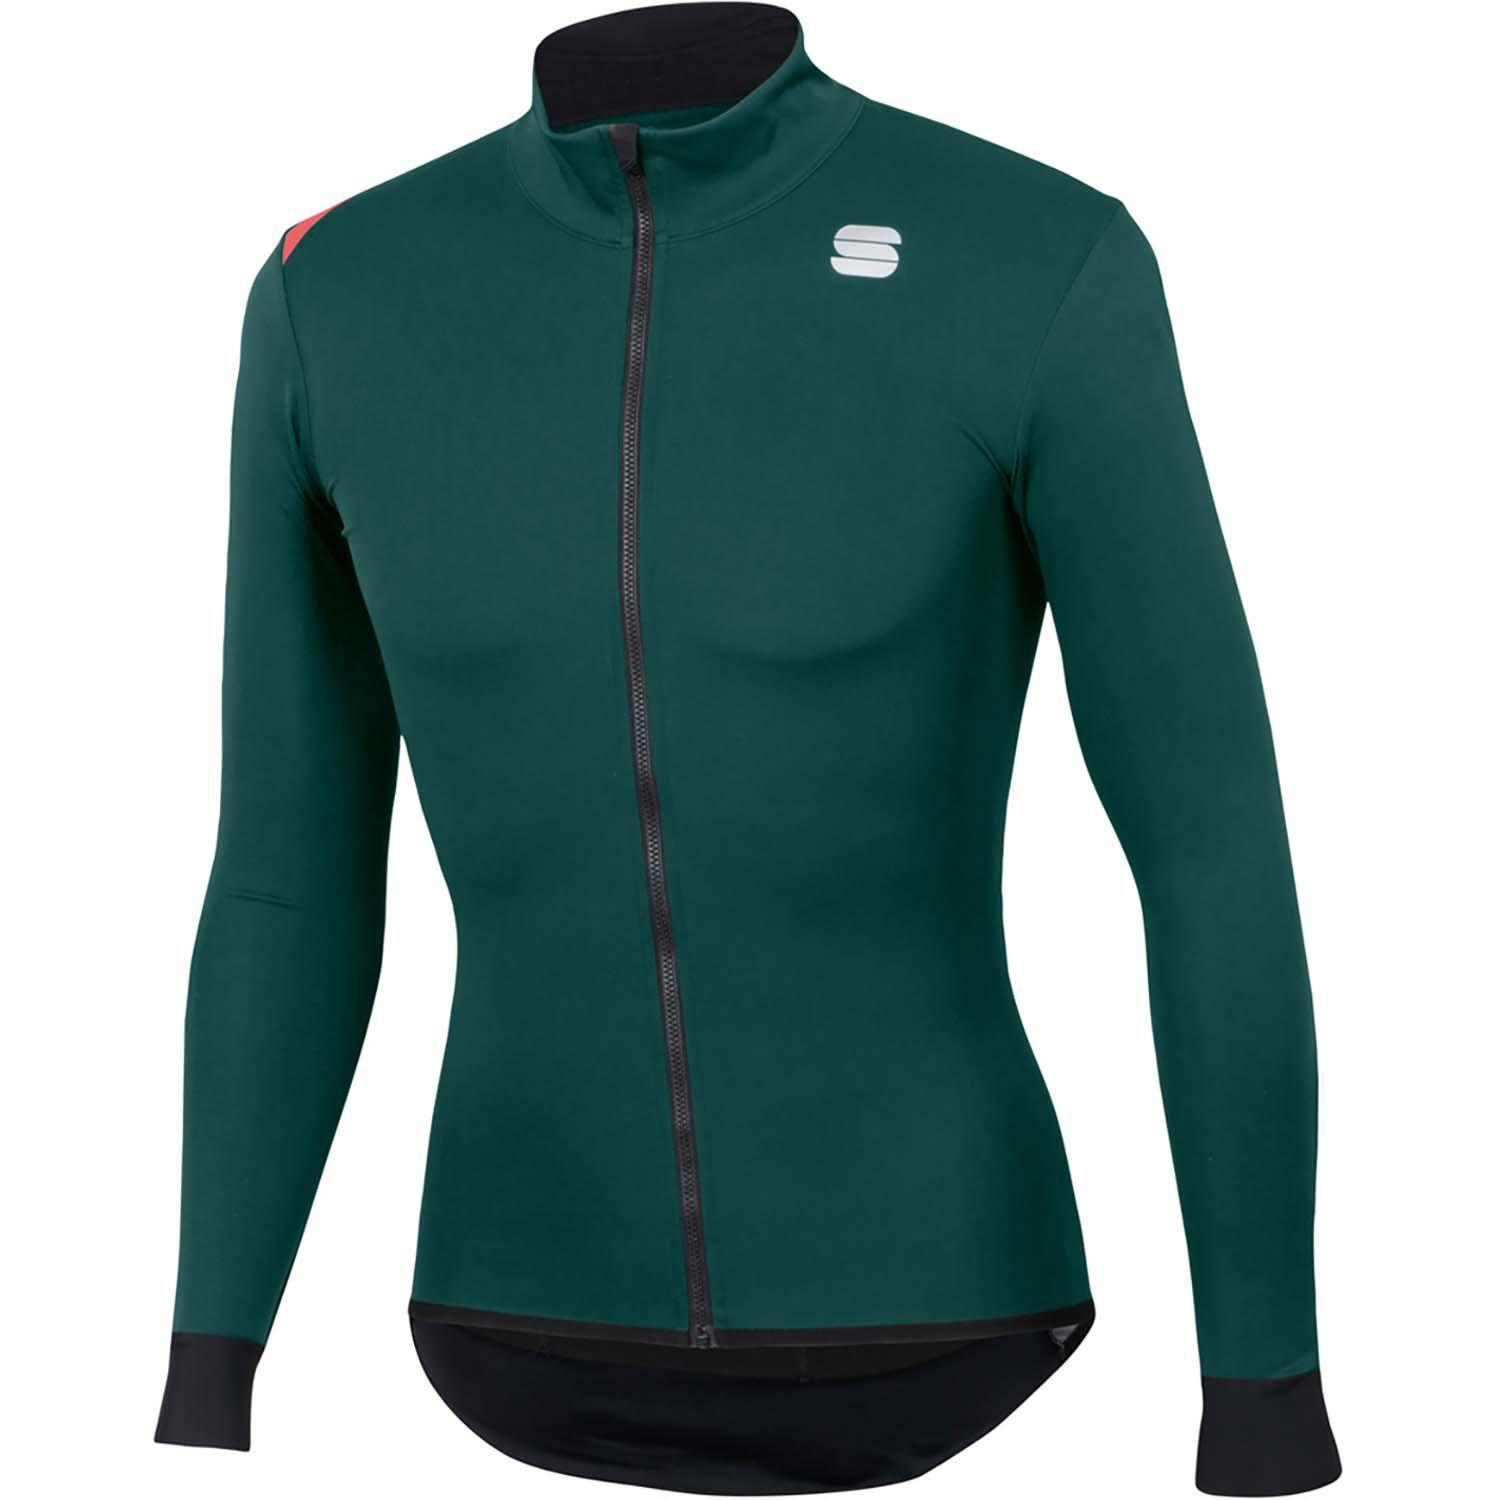 Sportful-Sportful Fiandre Light NoRain Jacket-Sea Moss-S-SF200213292-saddleback-elite-performance-cycling